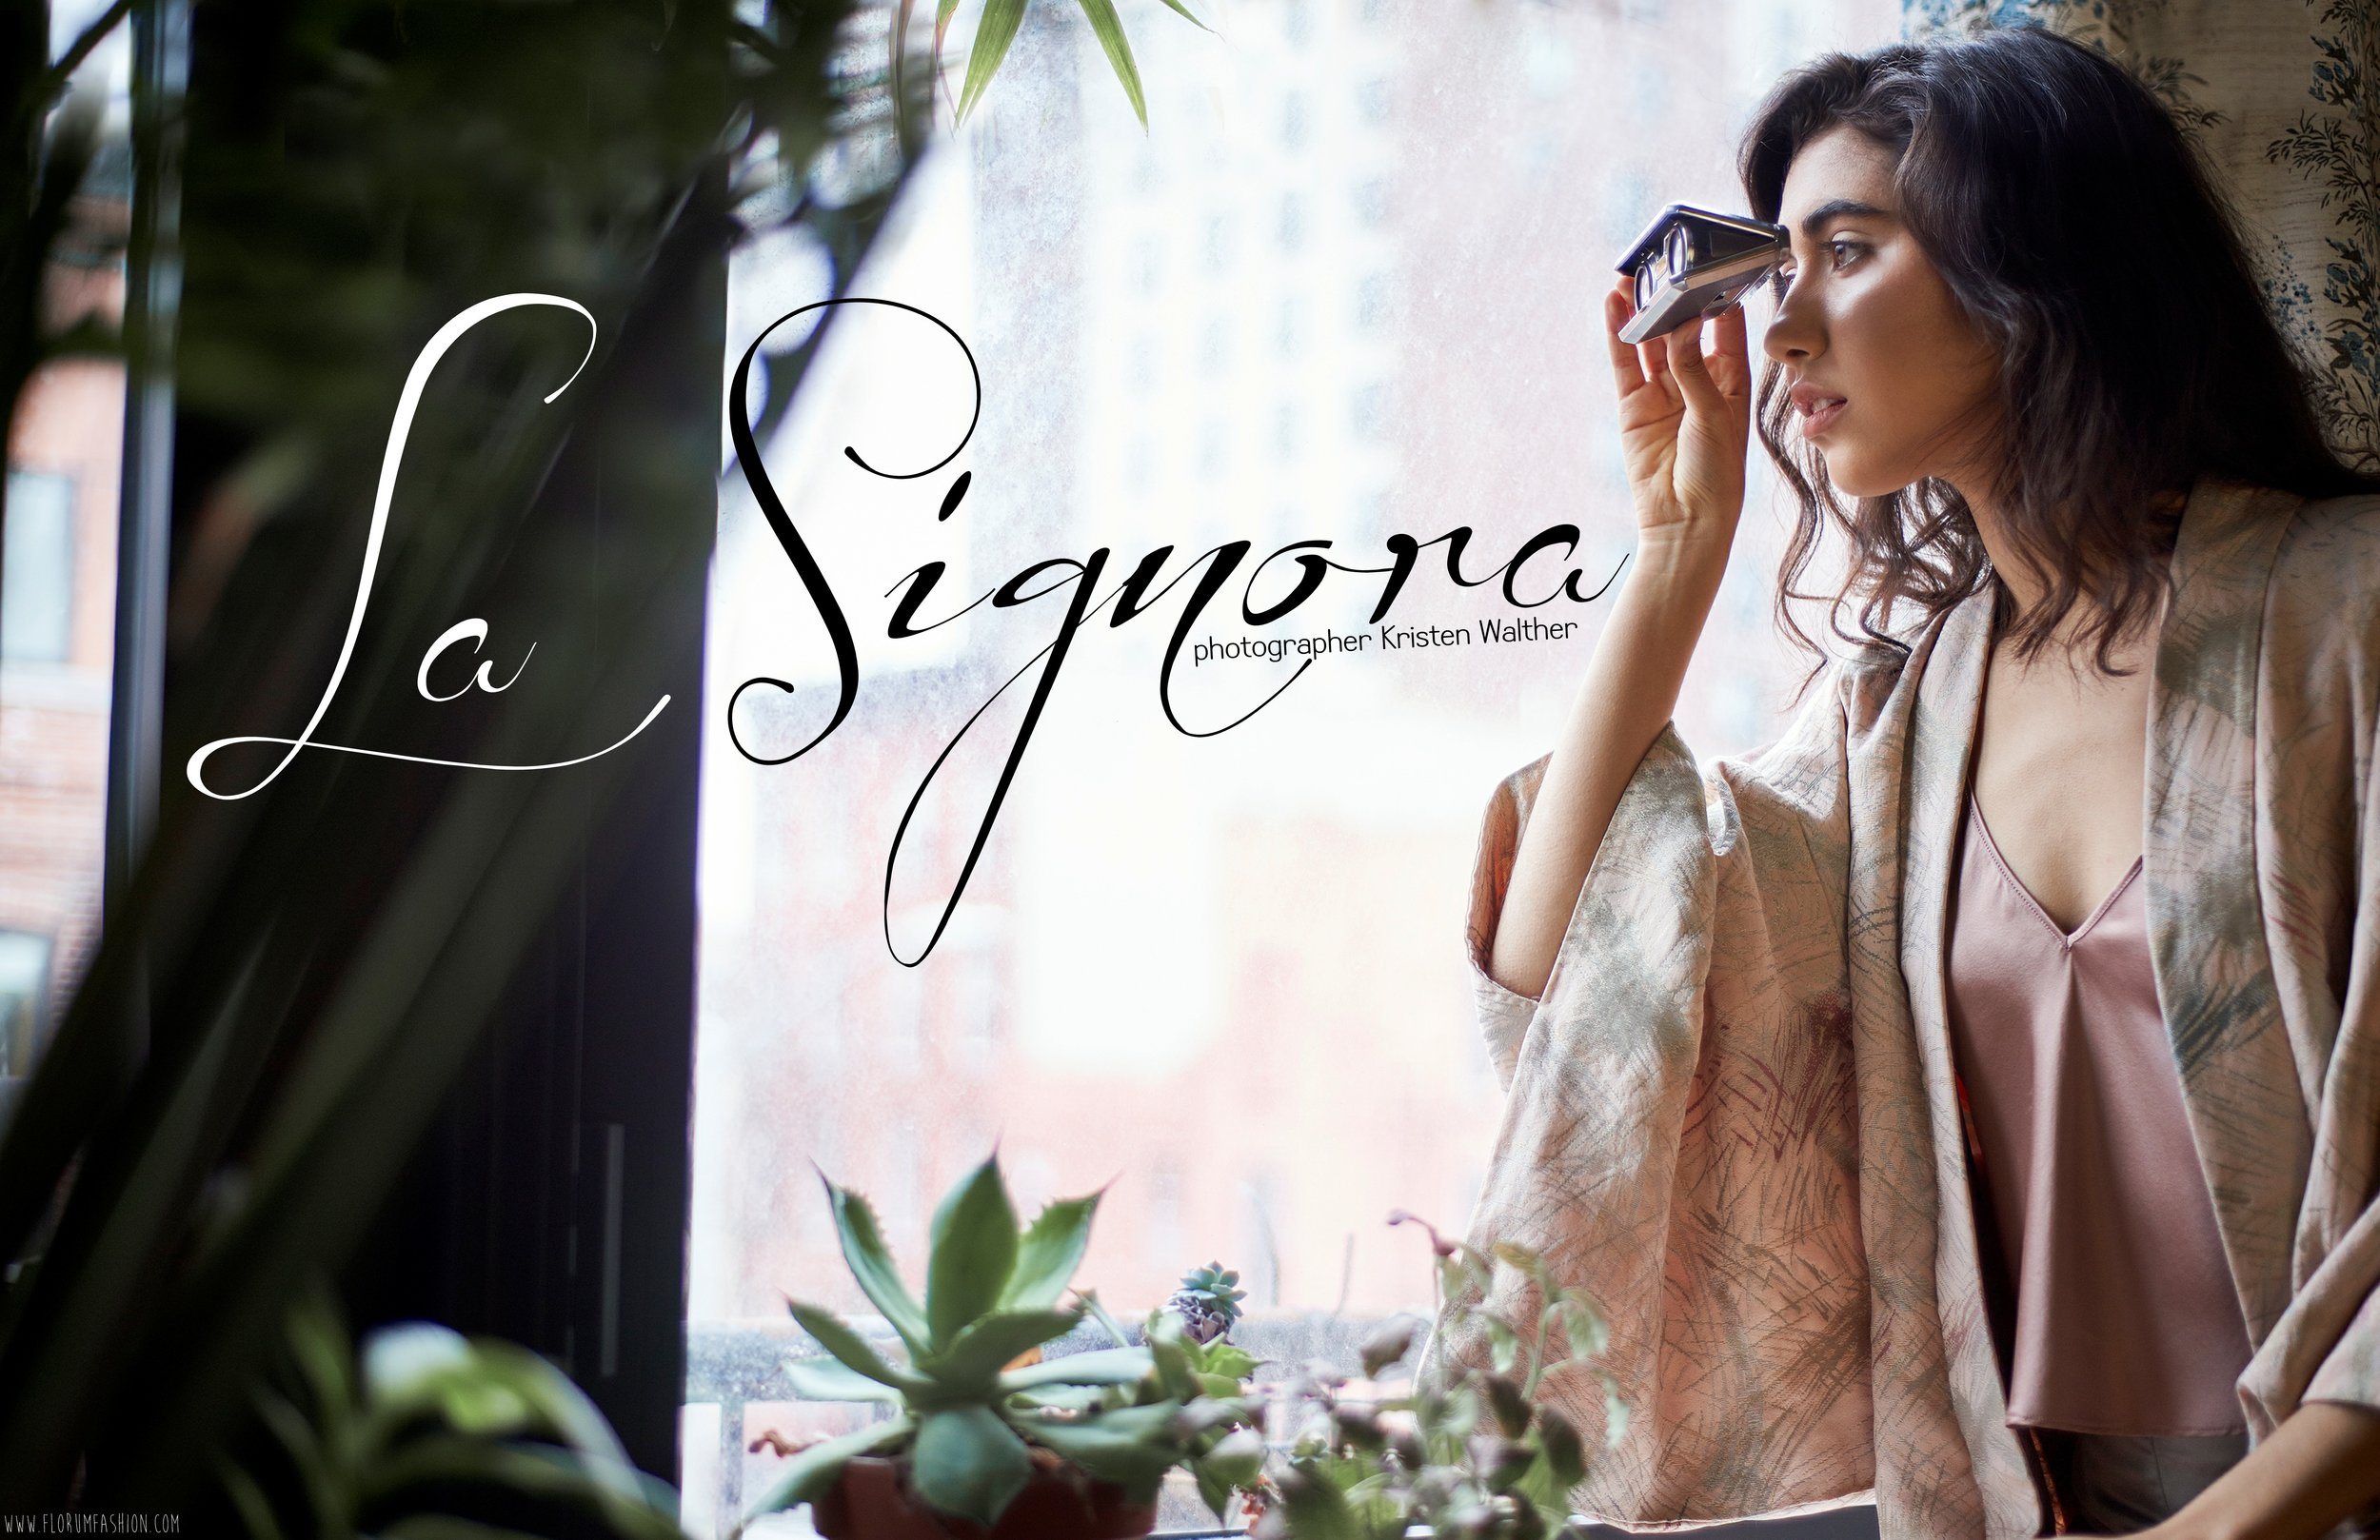 La Signora Kristen Walther wardrobe stylist Kallie Anne Youssera Belhachmi of Surface Model Management Florum Fashion Magazine  Makeup Habiba Elshazly  Hair Michael Glorioso Crossroads Trading